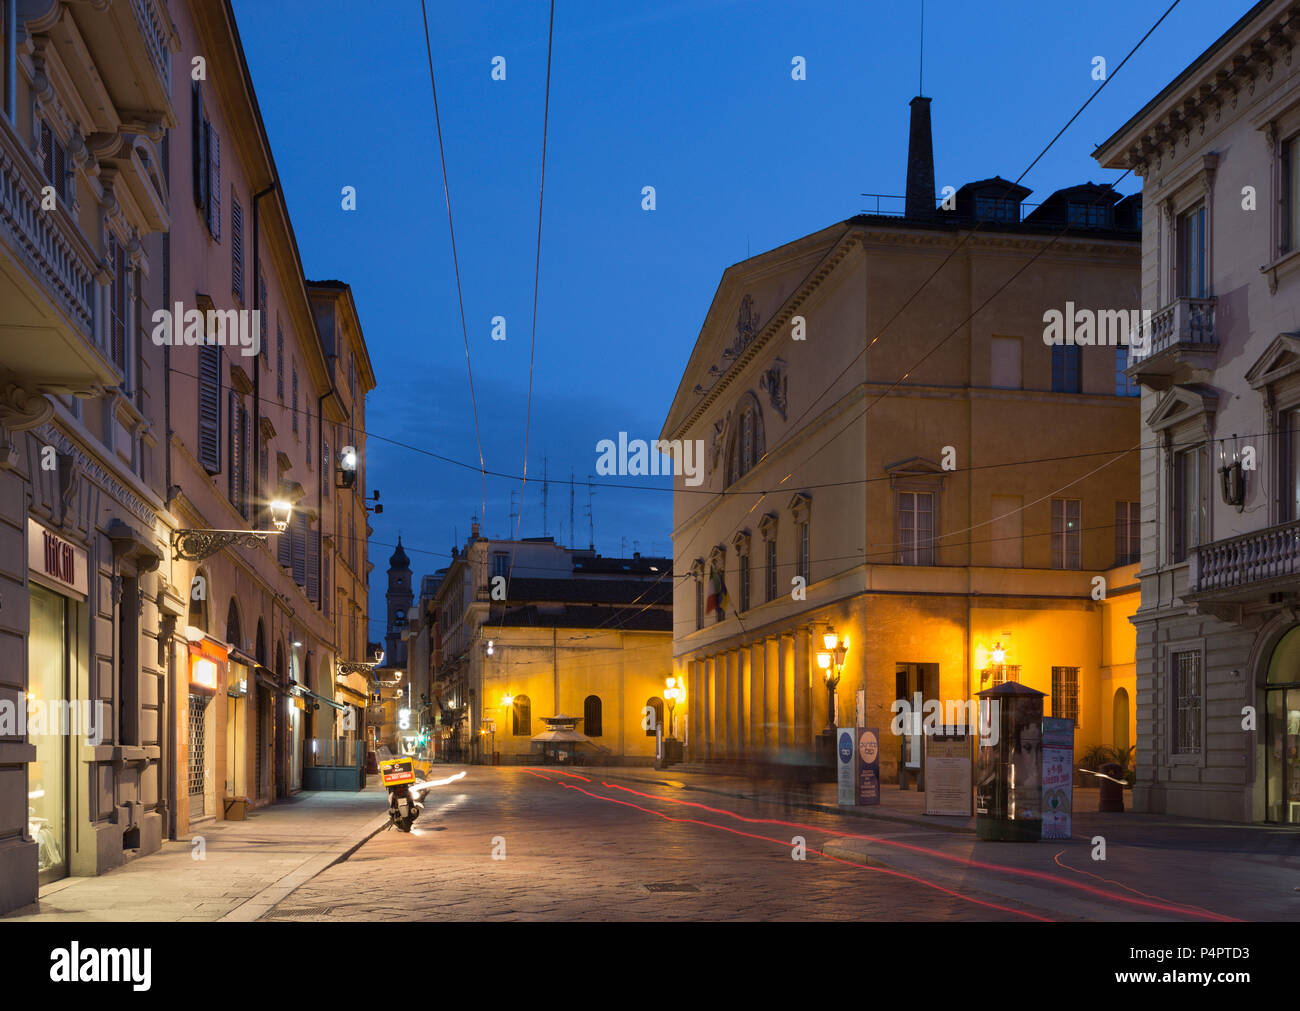 PARMA, ITALY - APRIL 17, 2018: The street of the old town at dusk and the Teatro Regio theater. - Stock Image